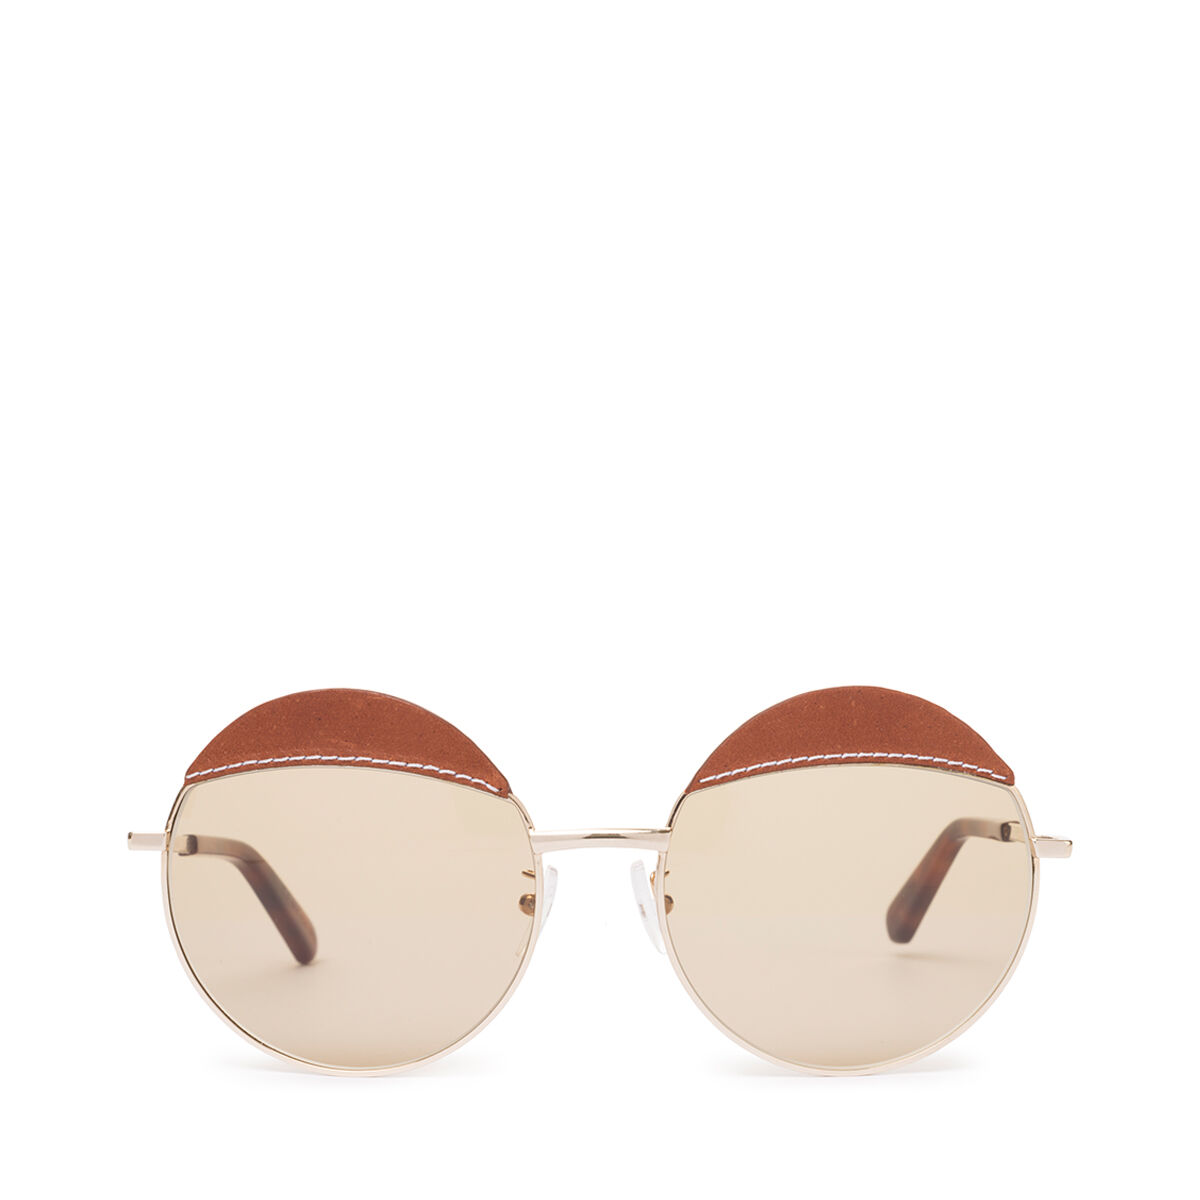 LOEWE Round Sticth Sunglasses Brown/Light Brown all